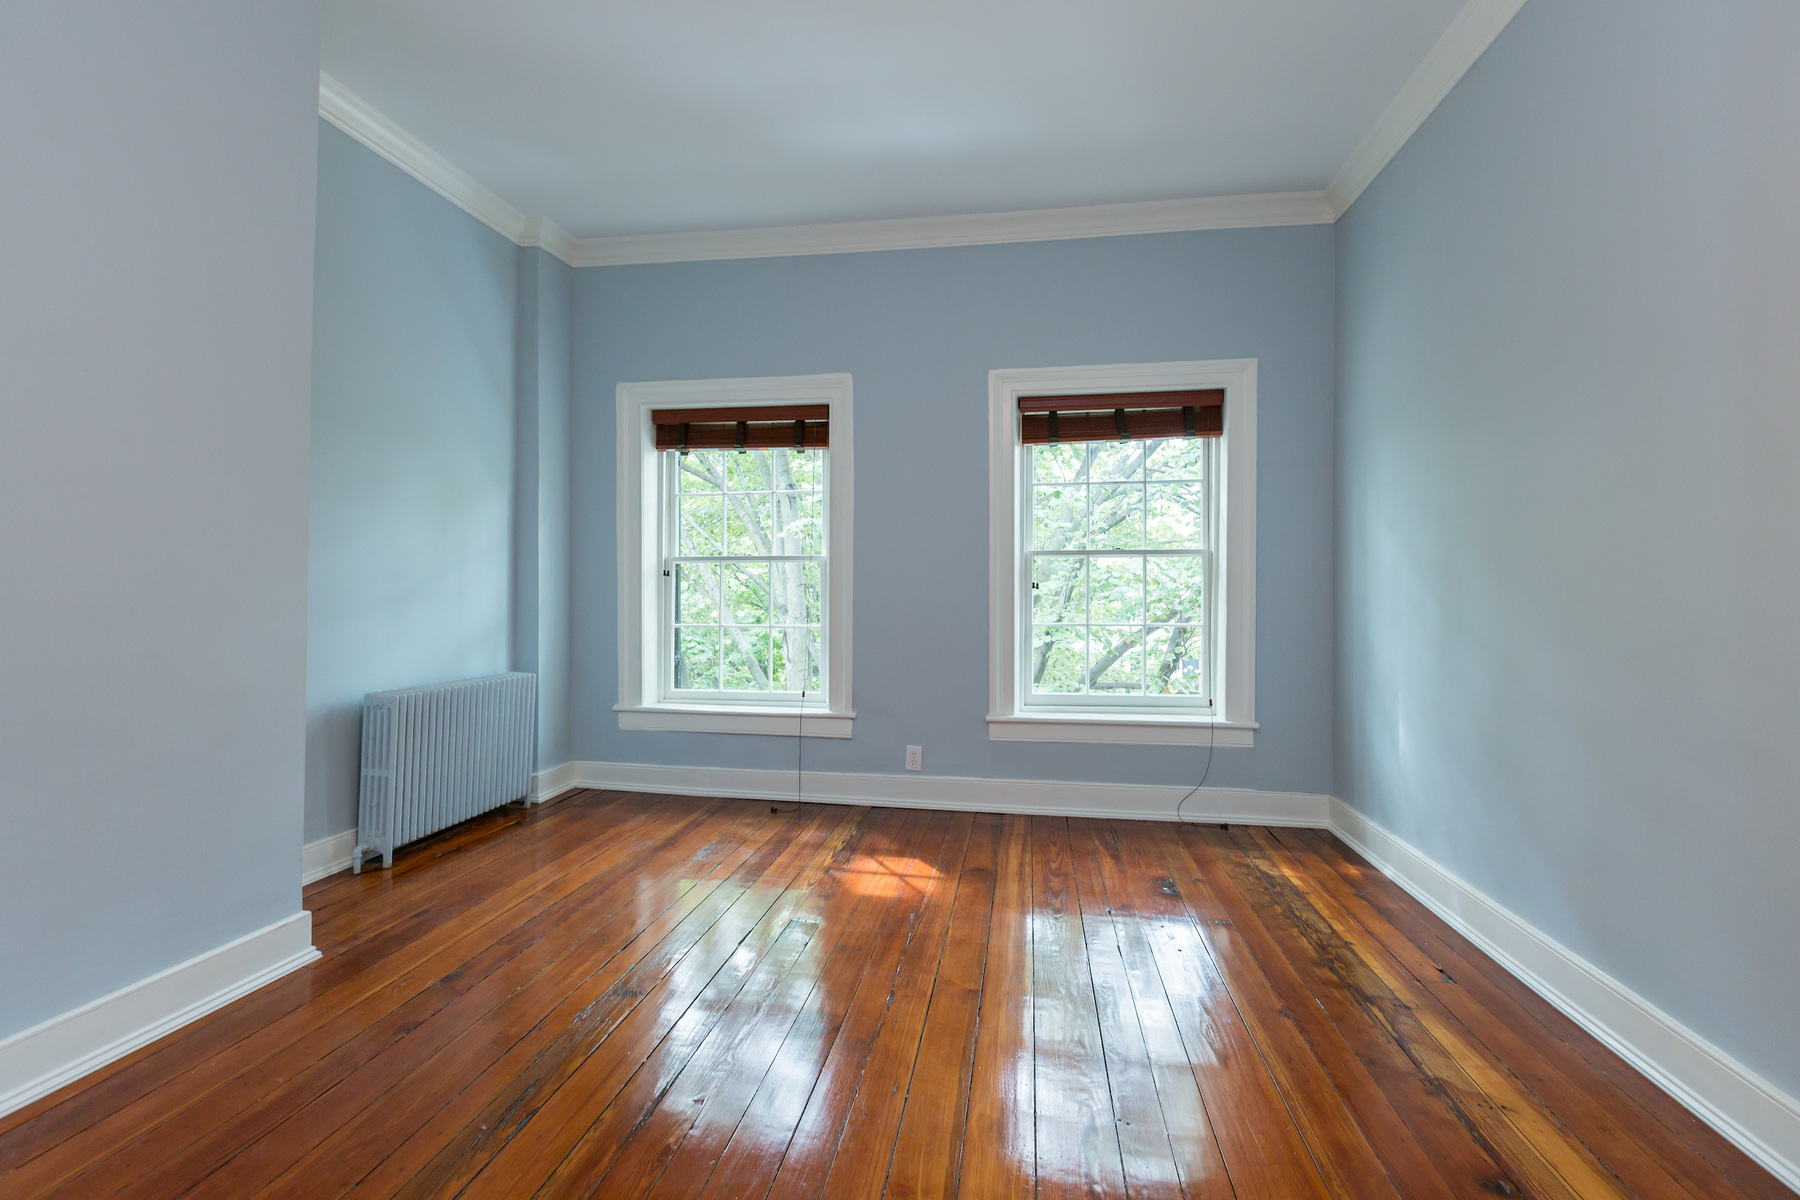 Additional photo for property listing at Old Town 117 Prince St Alexandria, Virginia 22314 Estados Unidos